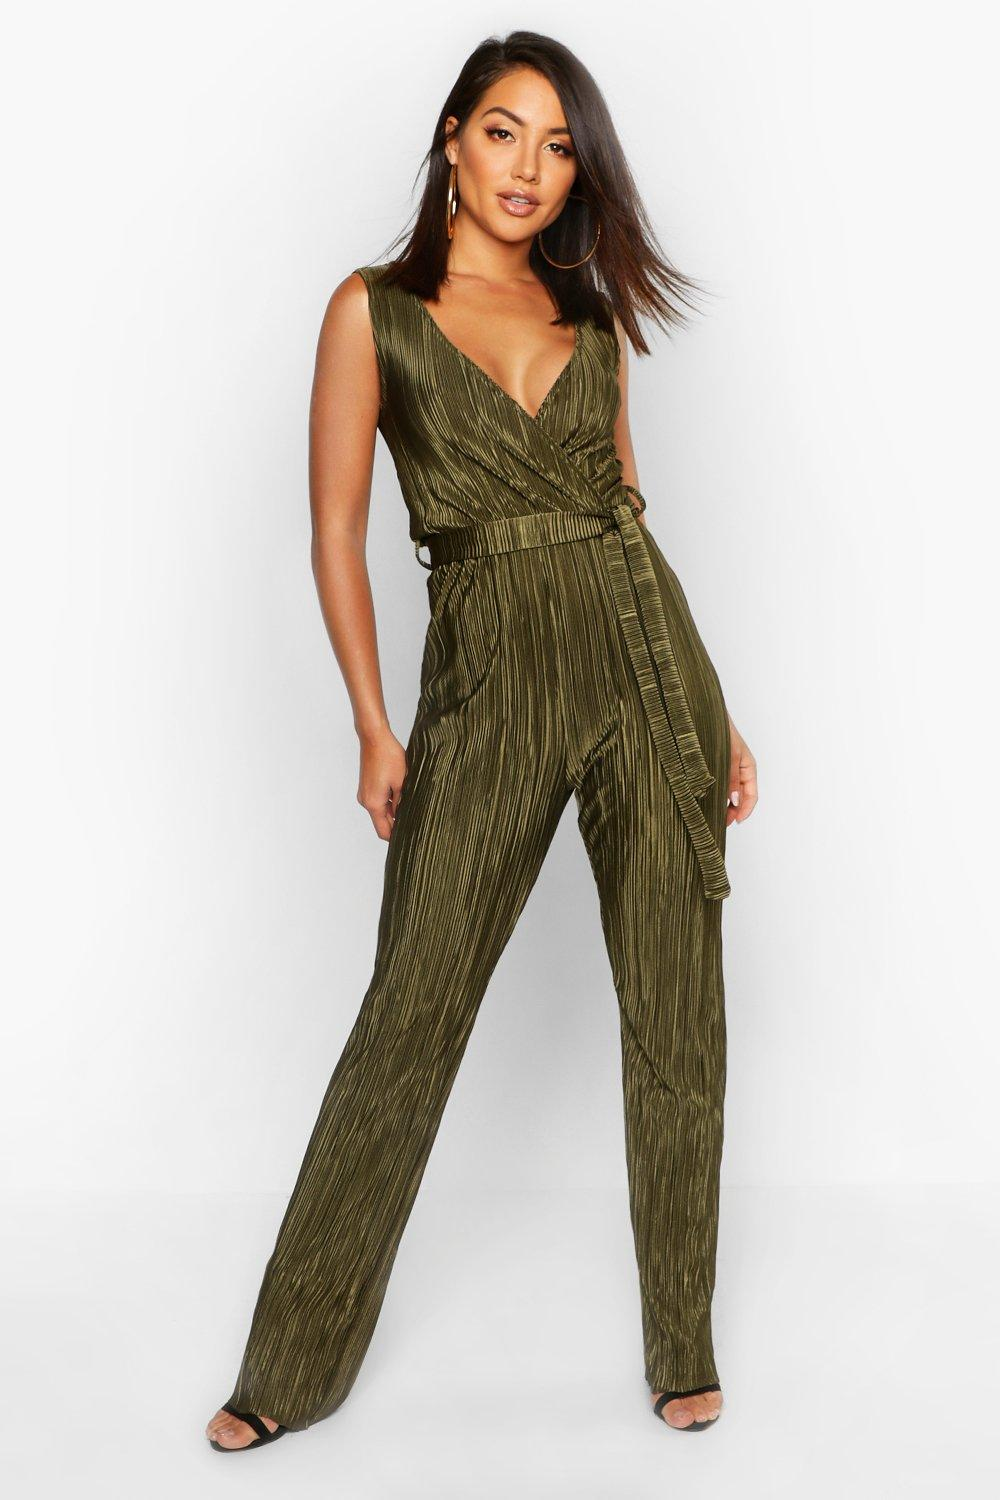 42bf6a79ba67 Plisse Plunge Jumpsuit. Hover to zoom